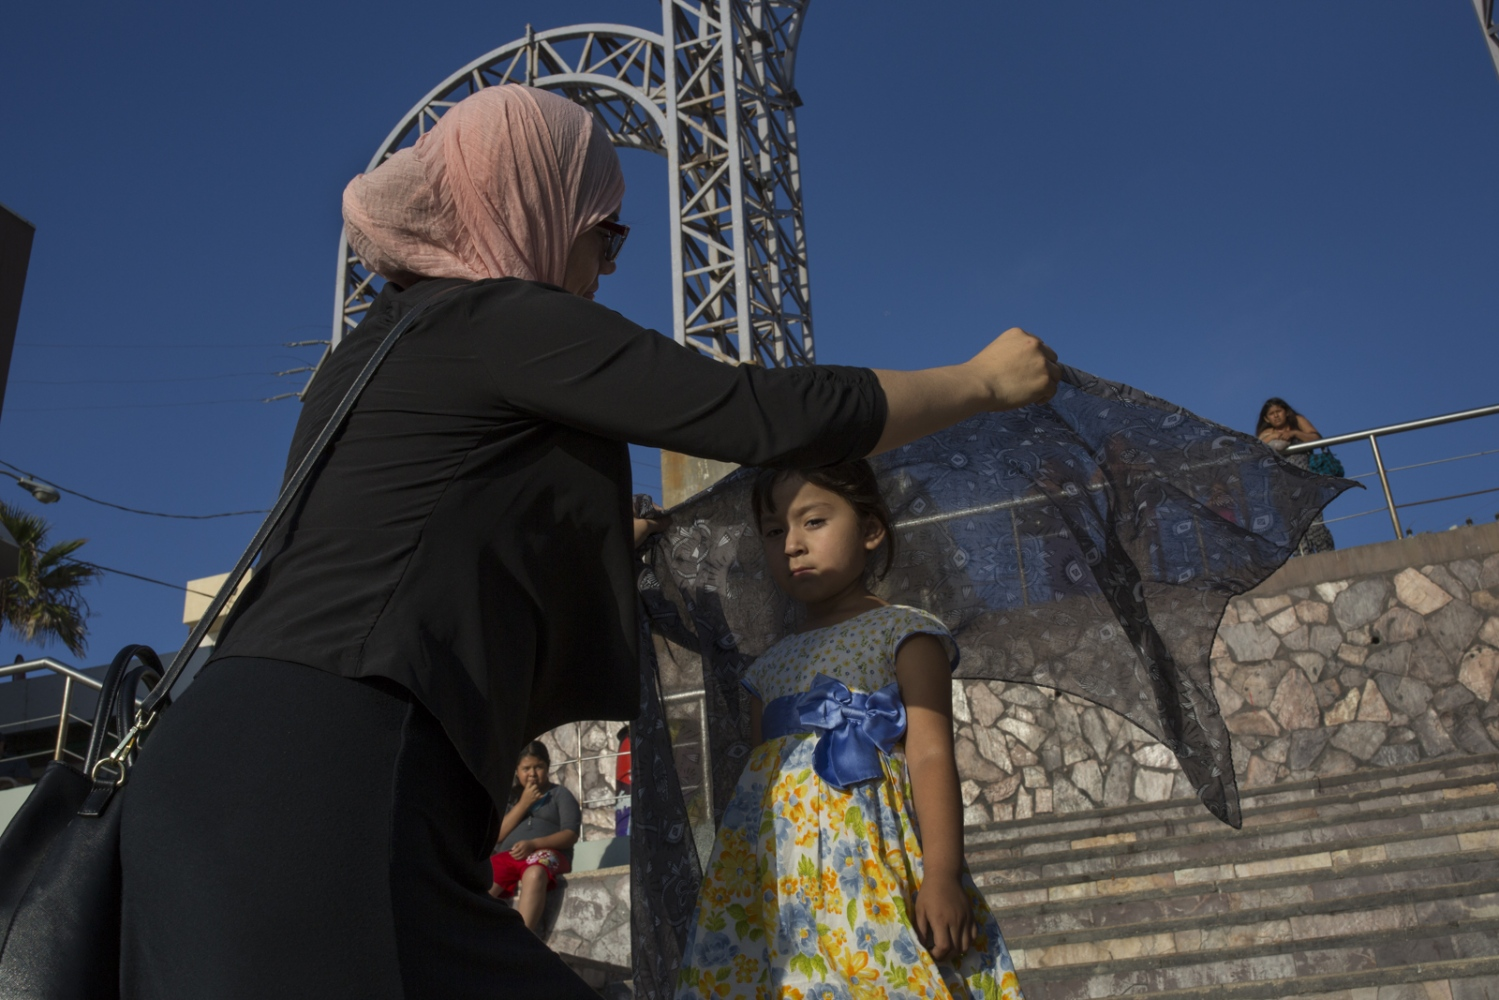 Mexican Muslim convert Ines Valdivia fixes her friends' daughter Michelle's hijab before heading to the mosque in Playas de Tijuana.